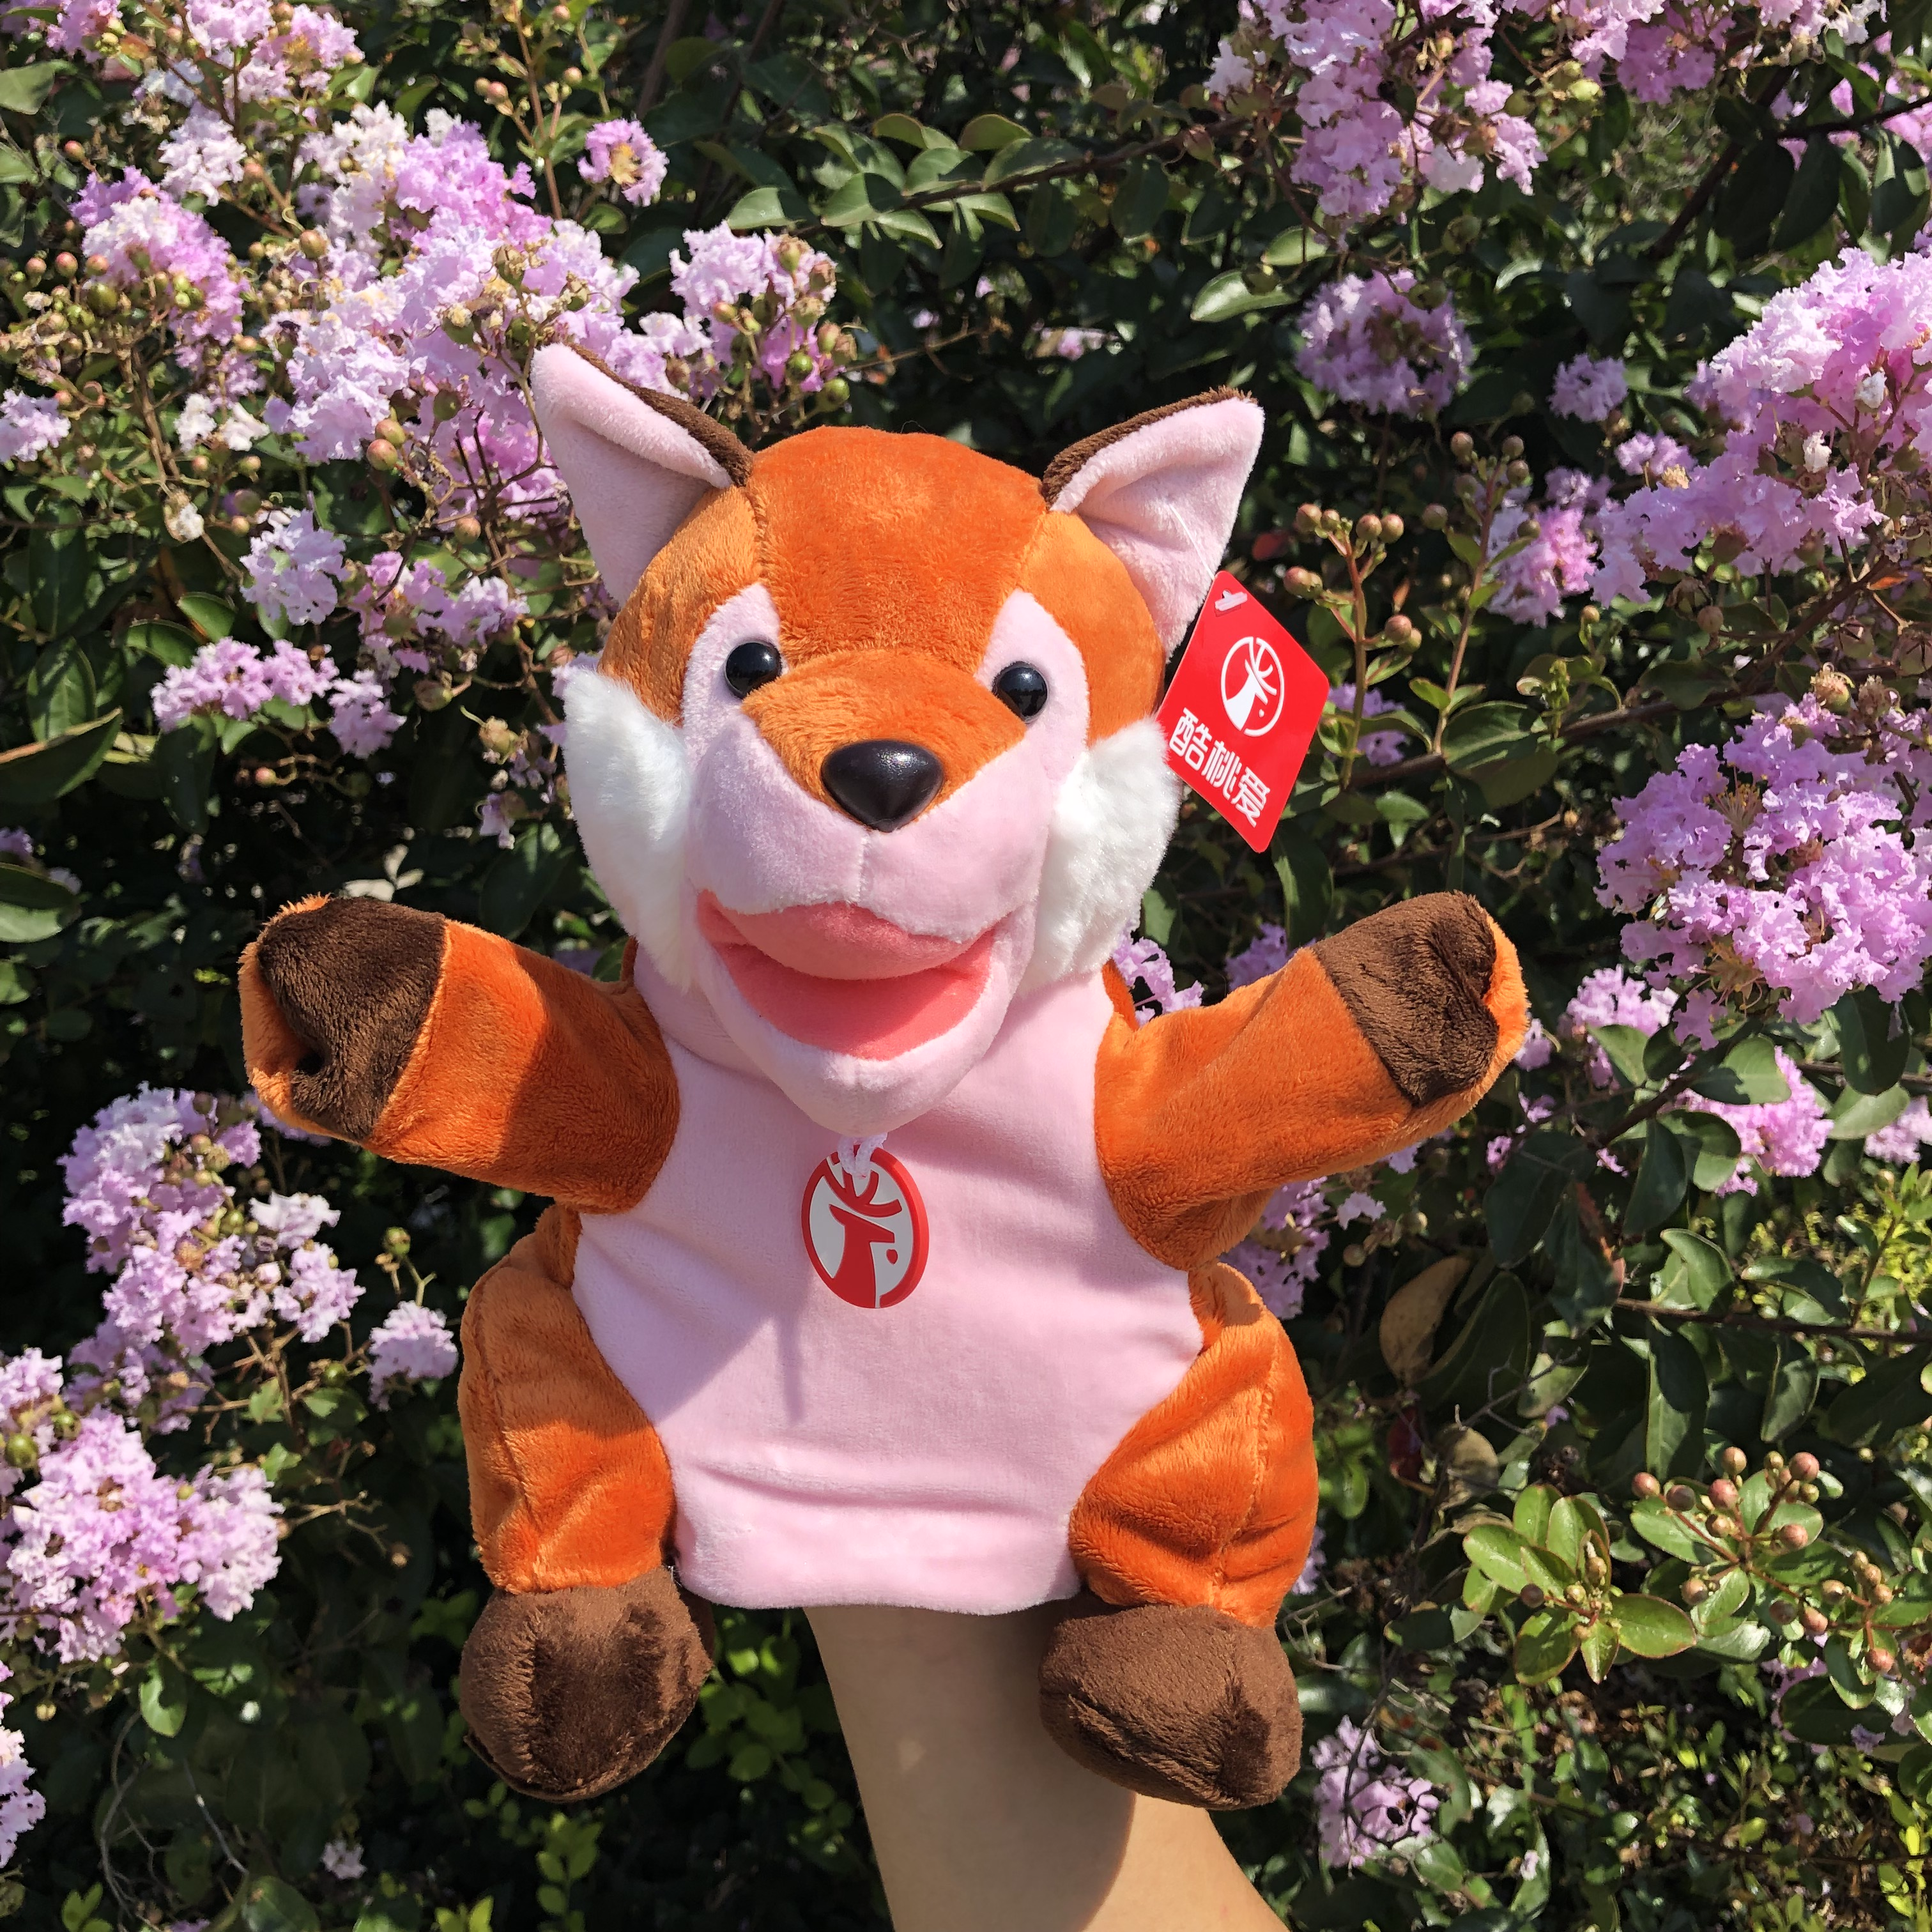 30cm Animal Hand Puppet Fox Hand Puppet Kids Doll Plush Toys Educational Fox Hand Puppet for Baby Children Role Play best Gift(China)